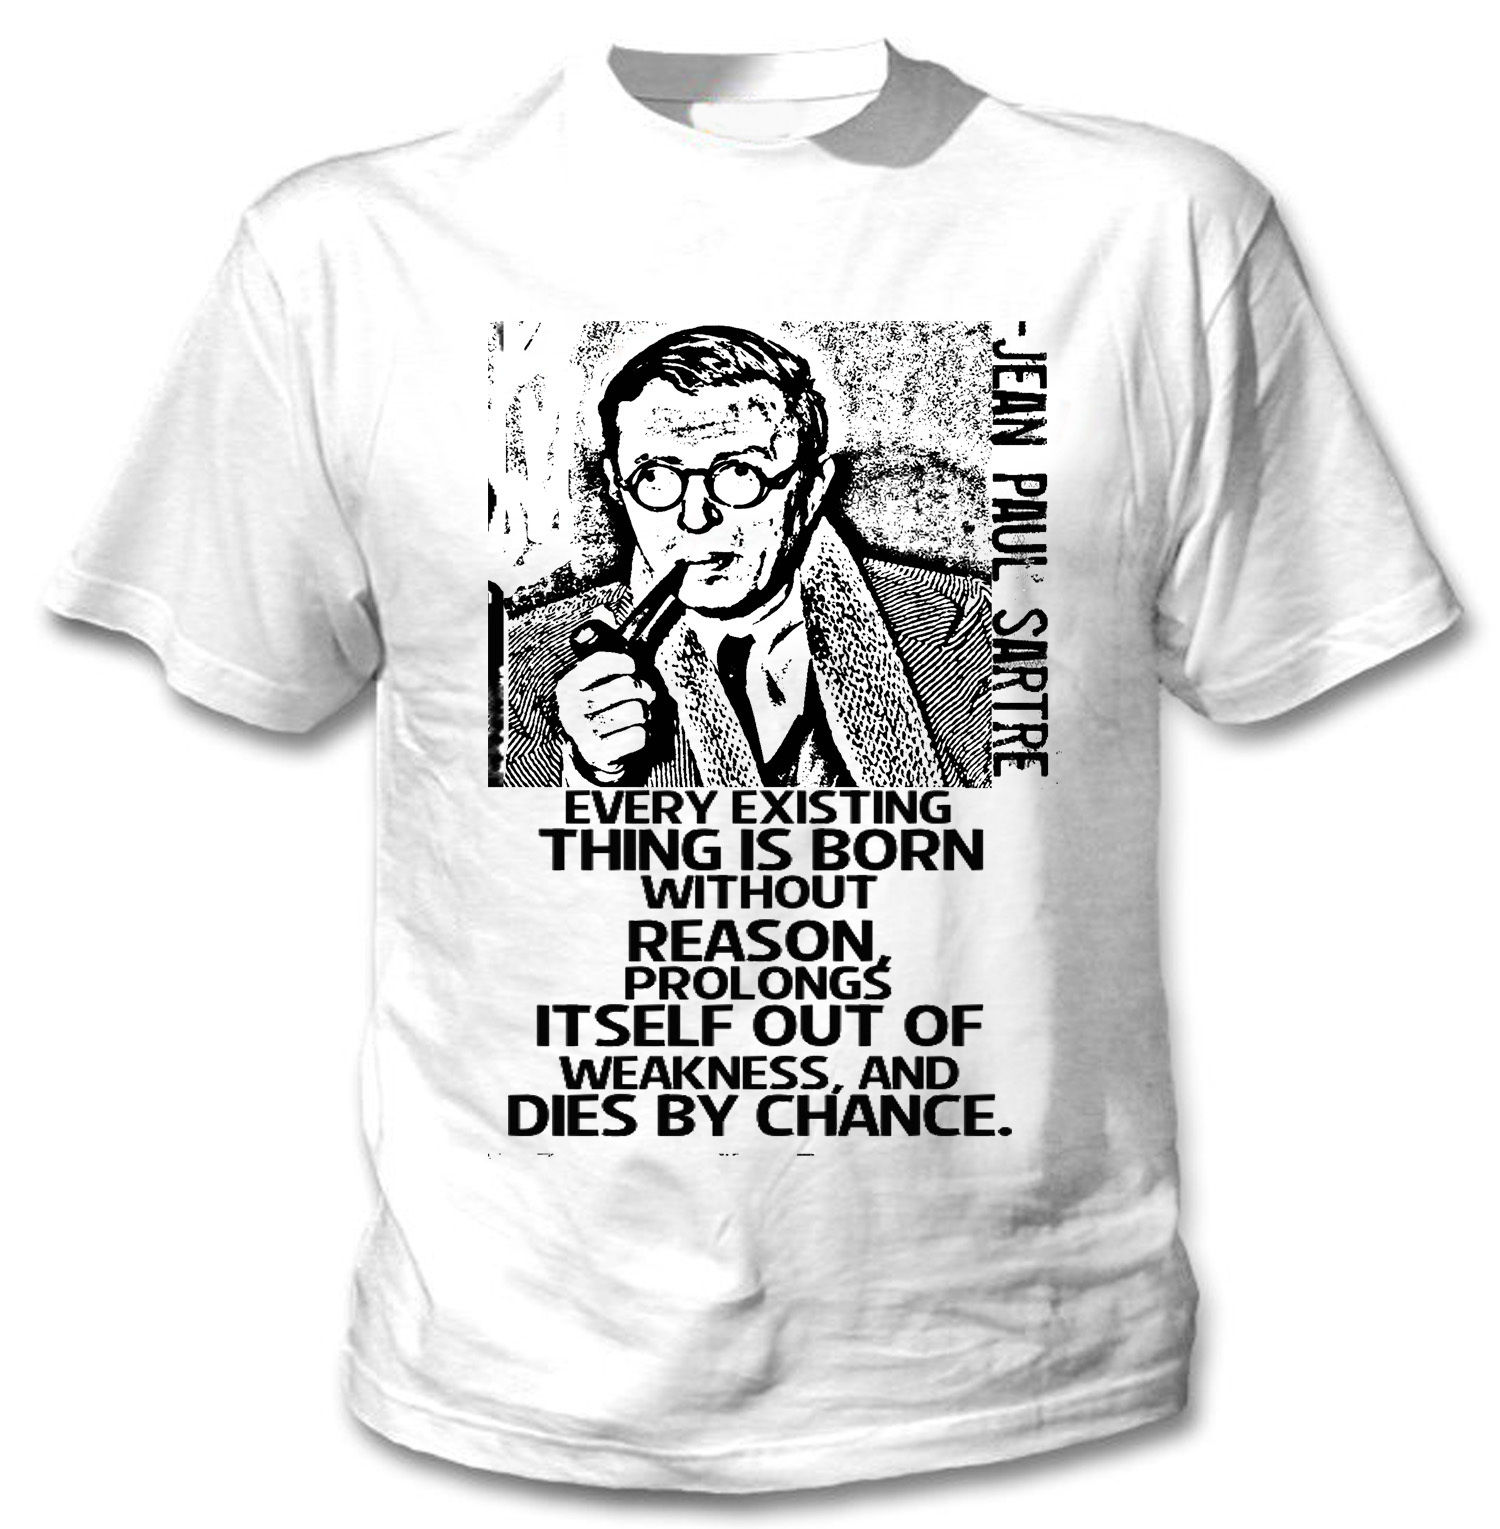 JEAN PAUL SARTRE FRENCH PHILOSOPHER QUOTE - NEW AMAZING GRAPHIC TSHIRT Summer Short Sleeves Fashion T Shirt Free Shipping